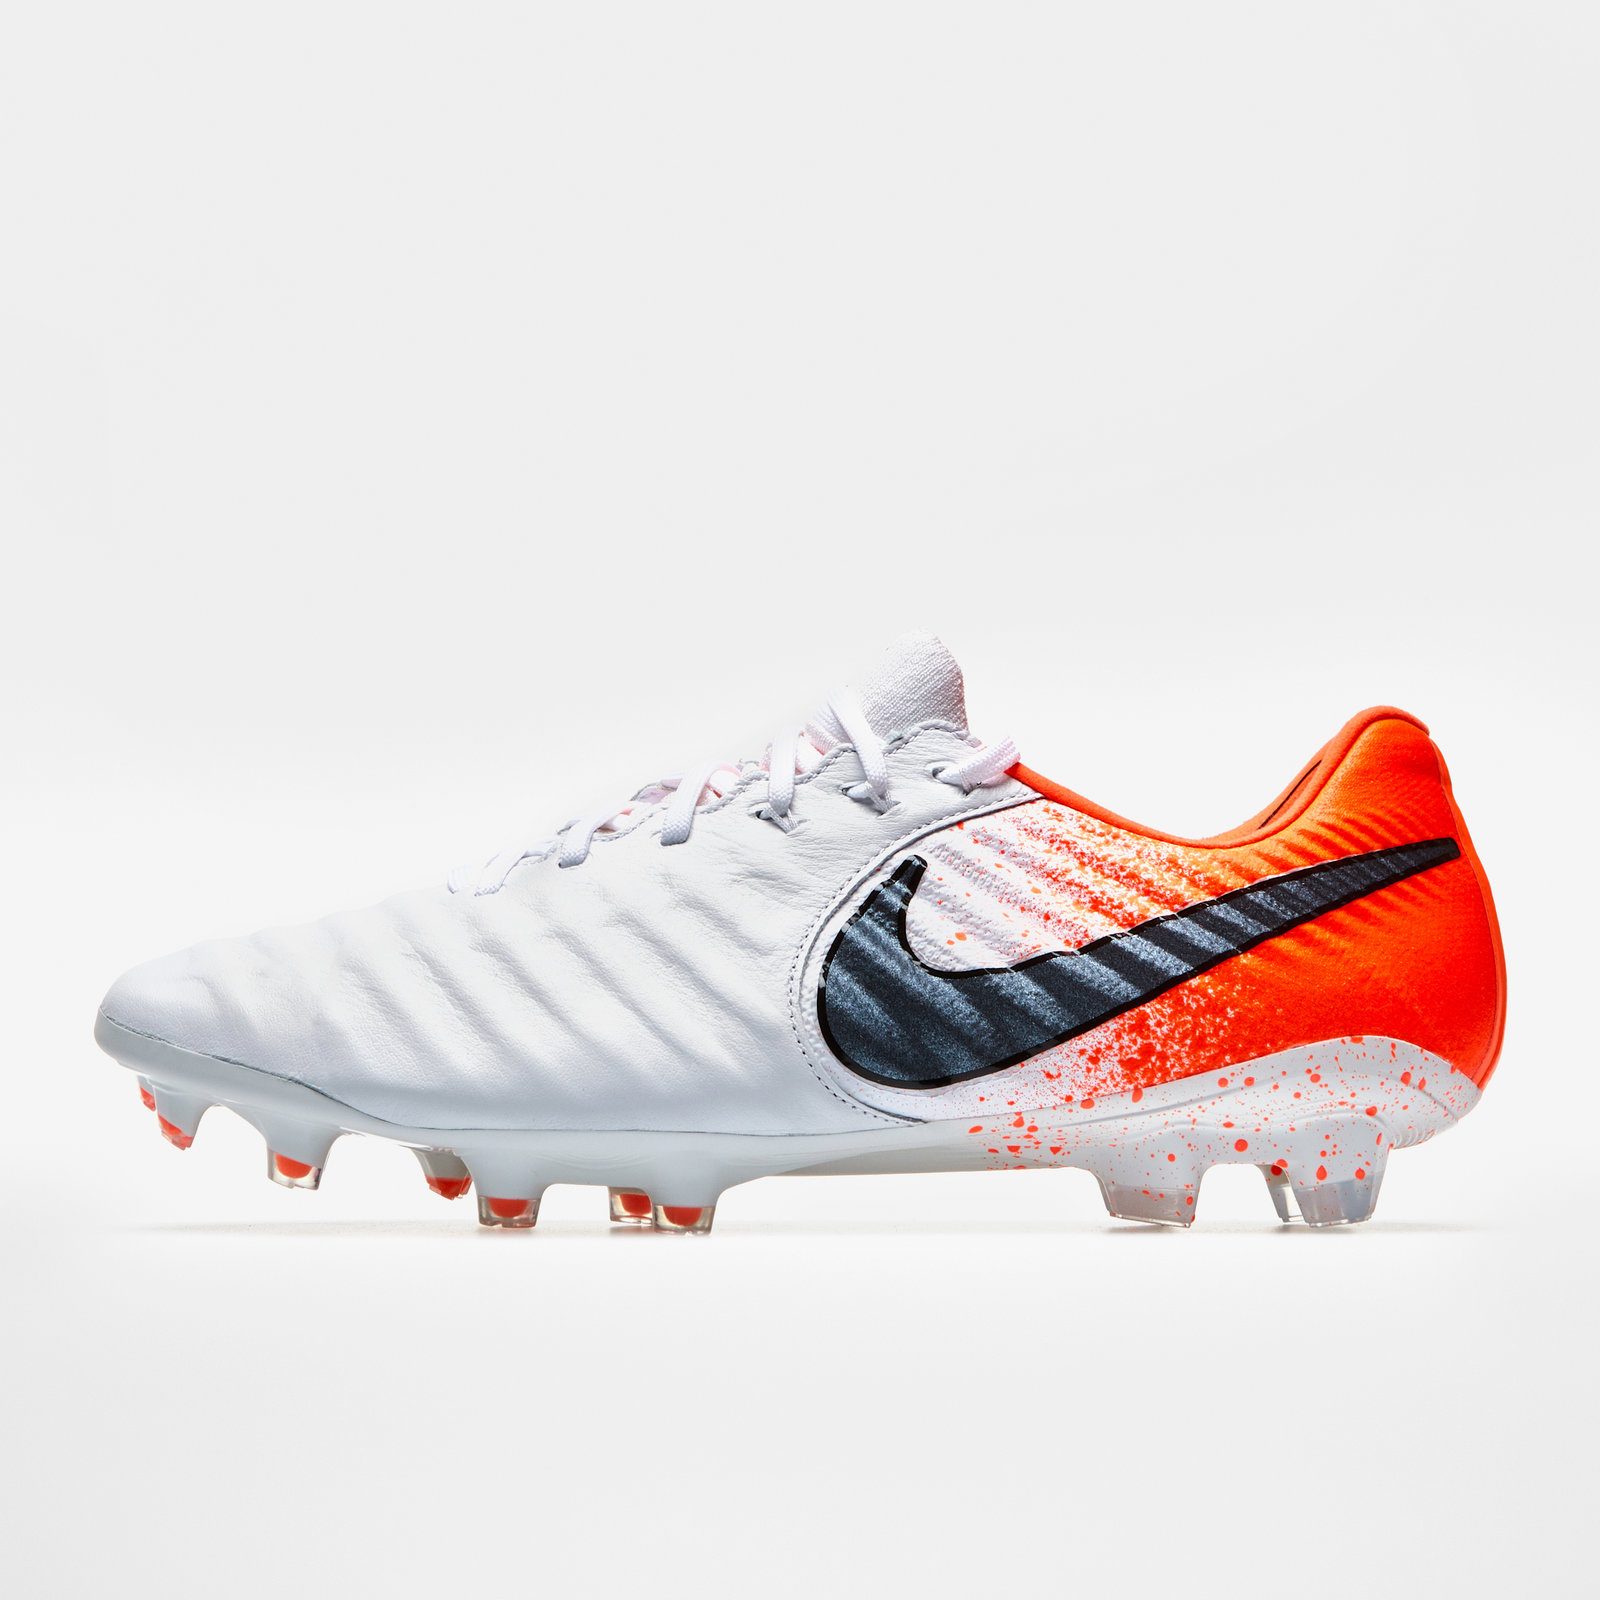 9052f480d928 Nike Legend 7 Elite FG Firm-Ground Football Boot - White | AH7238-118 |  FOOTY.COM